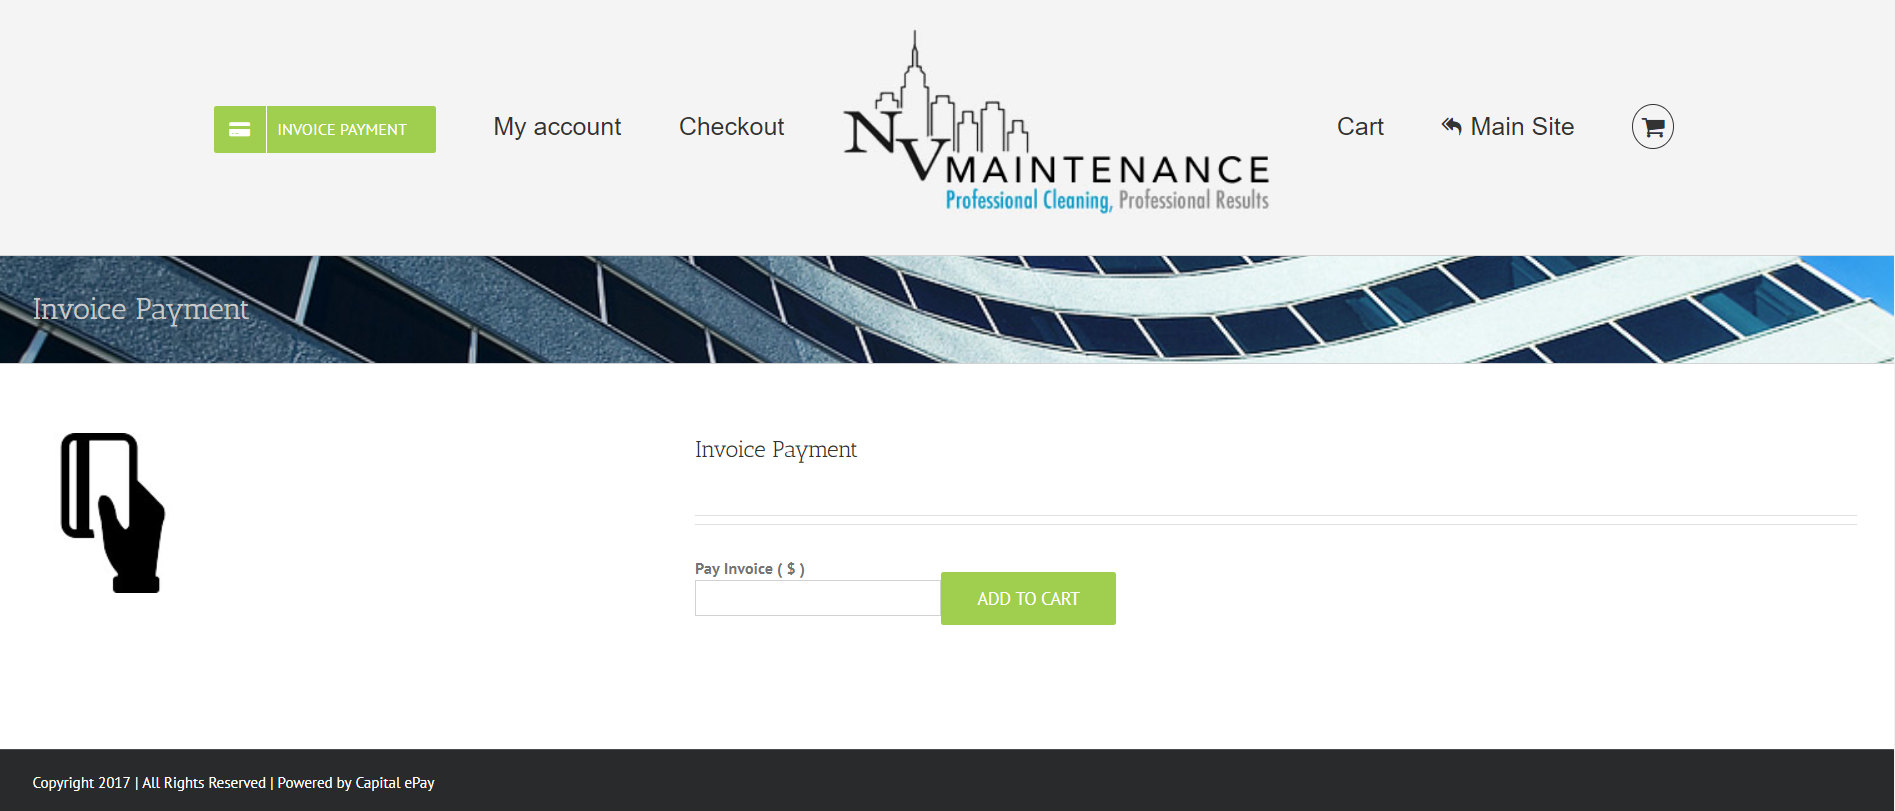 Capital EPay Launched NV Maintenance Invoice Payment System - Invoice payment system